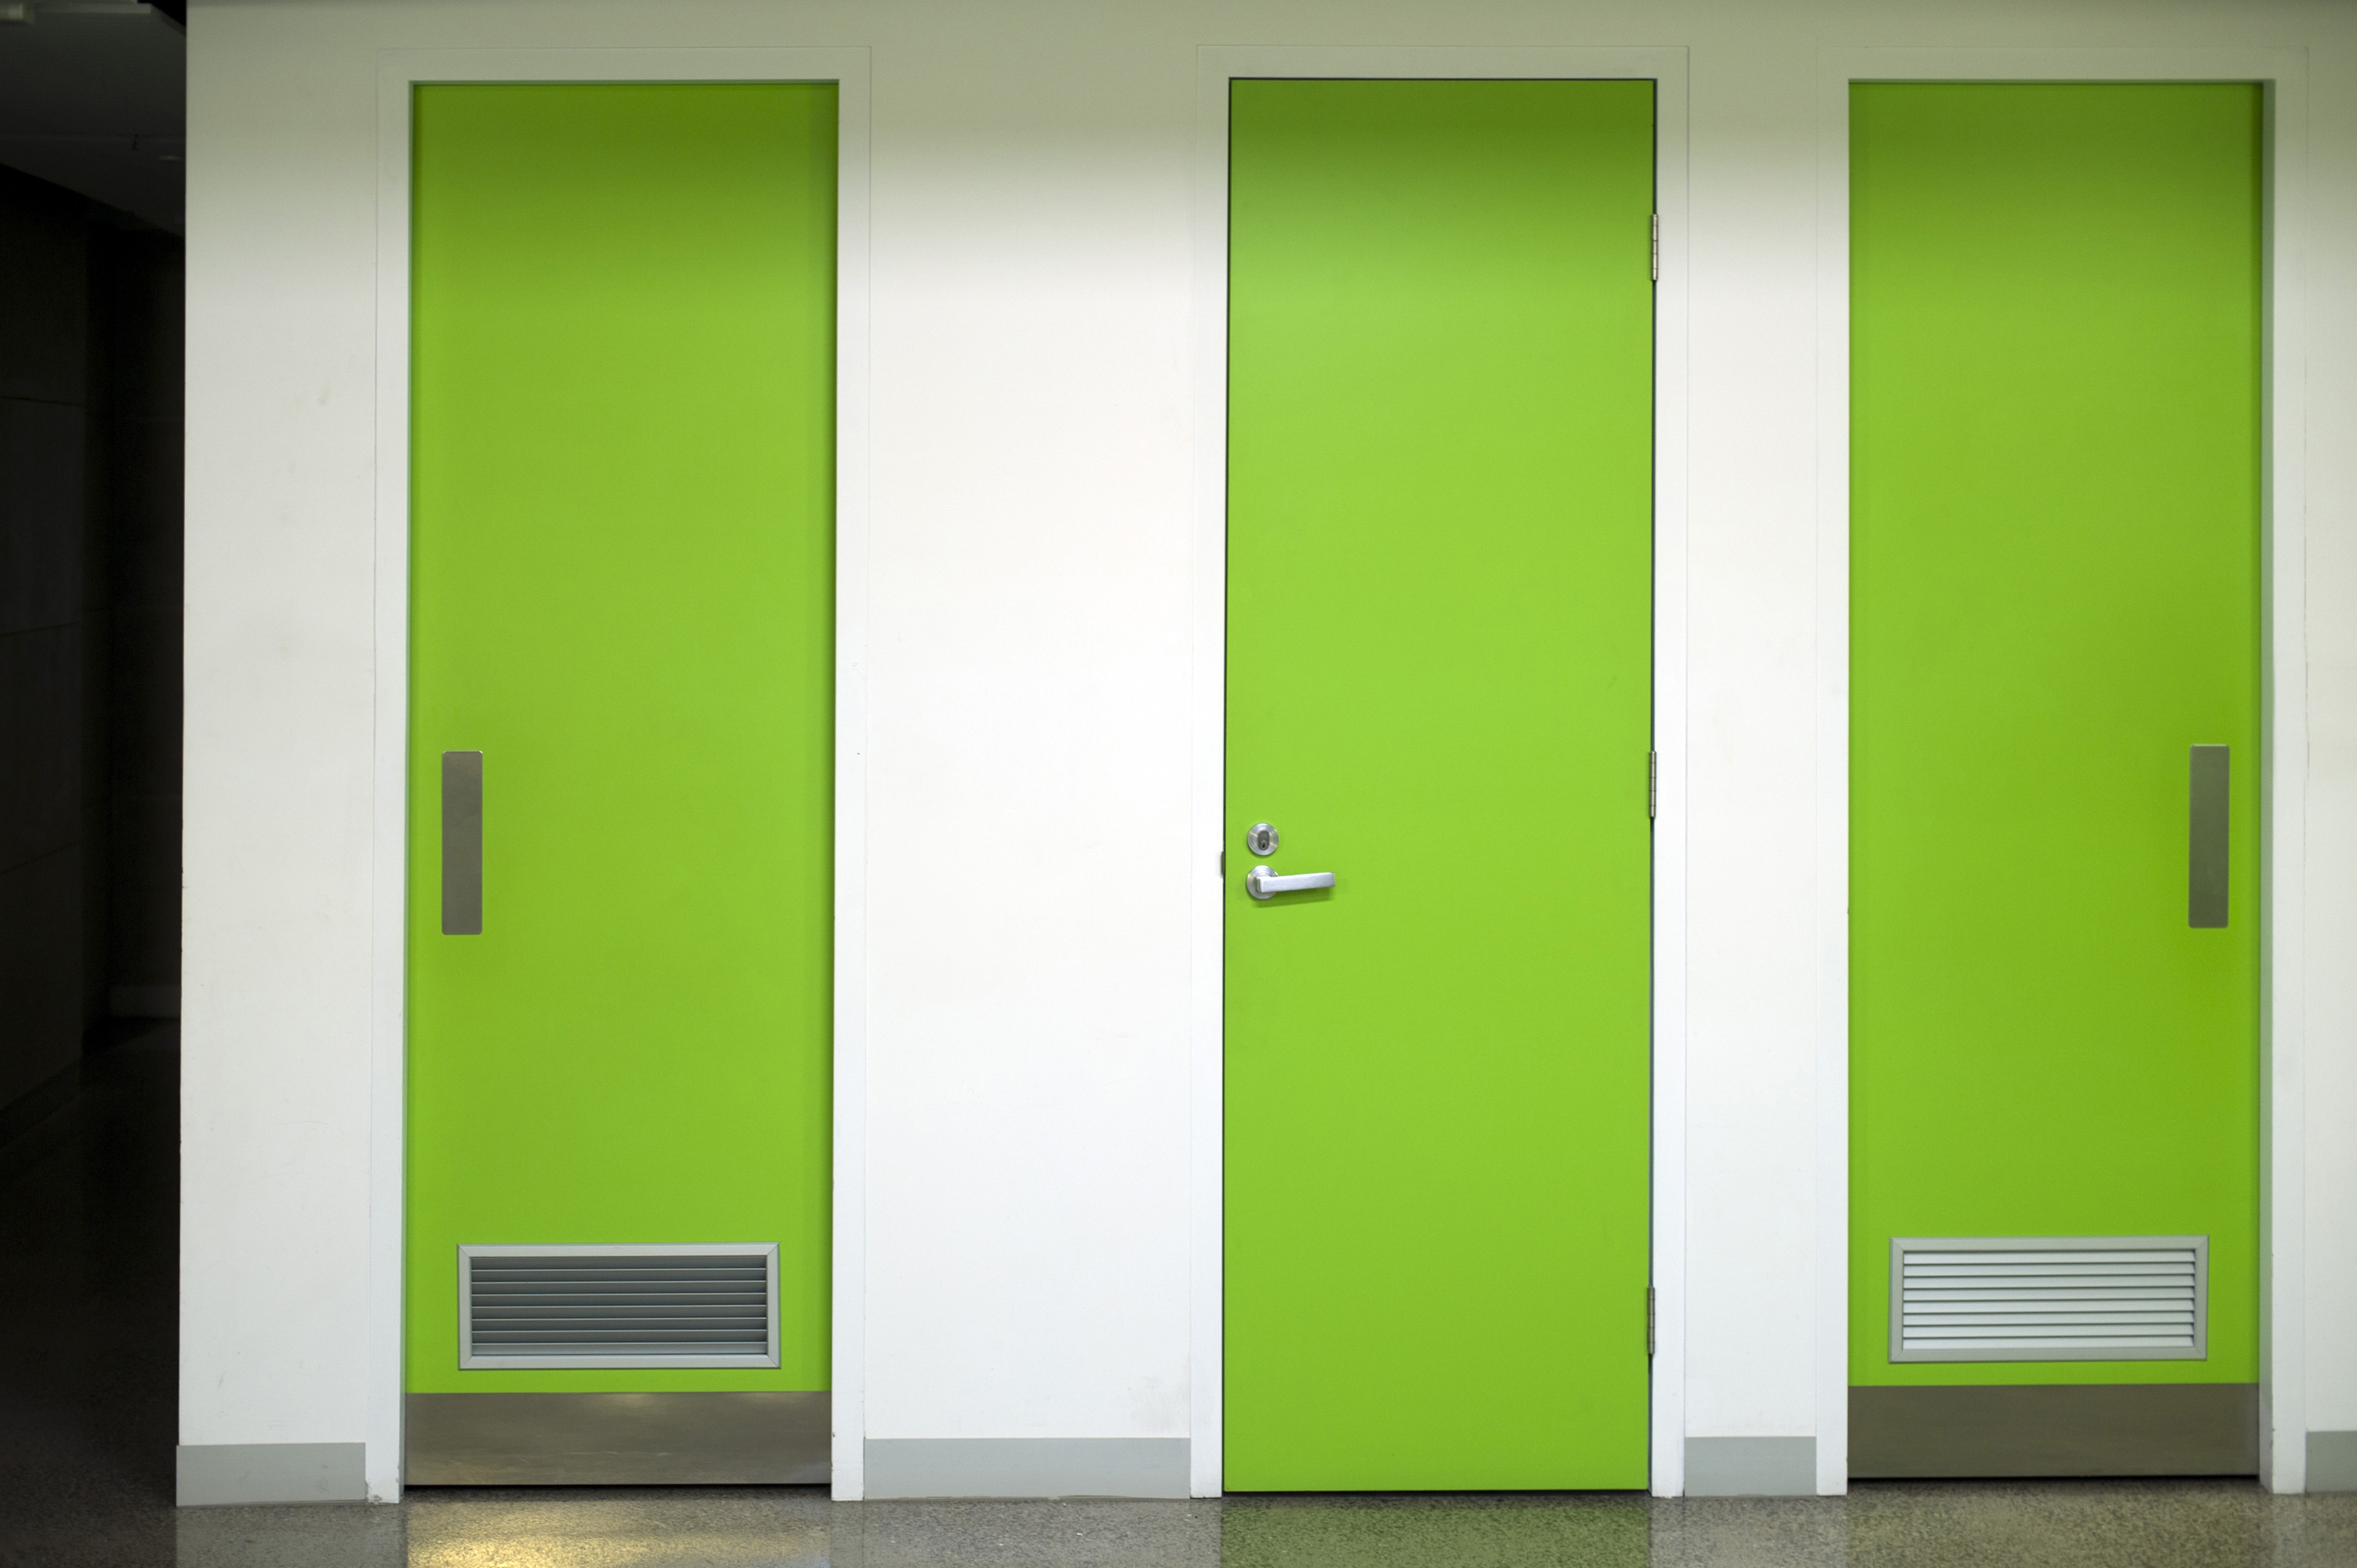 Le Meilleur Image Of White Wall With Three Bright Green Doors Ce Mois Ci